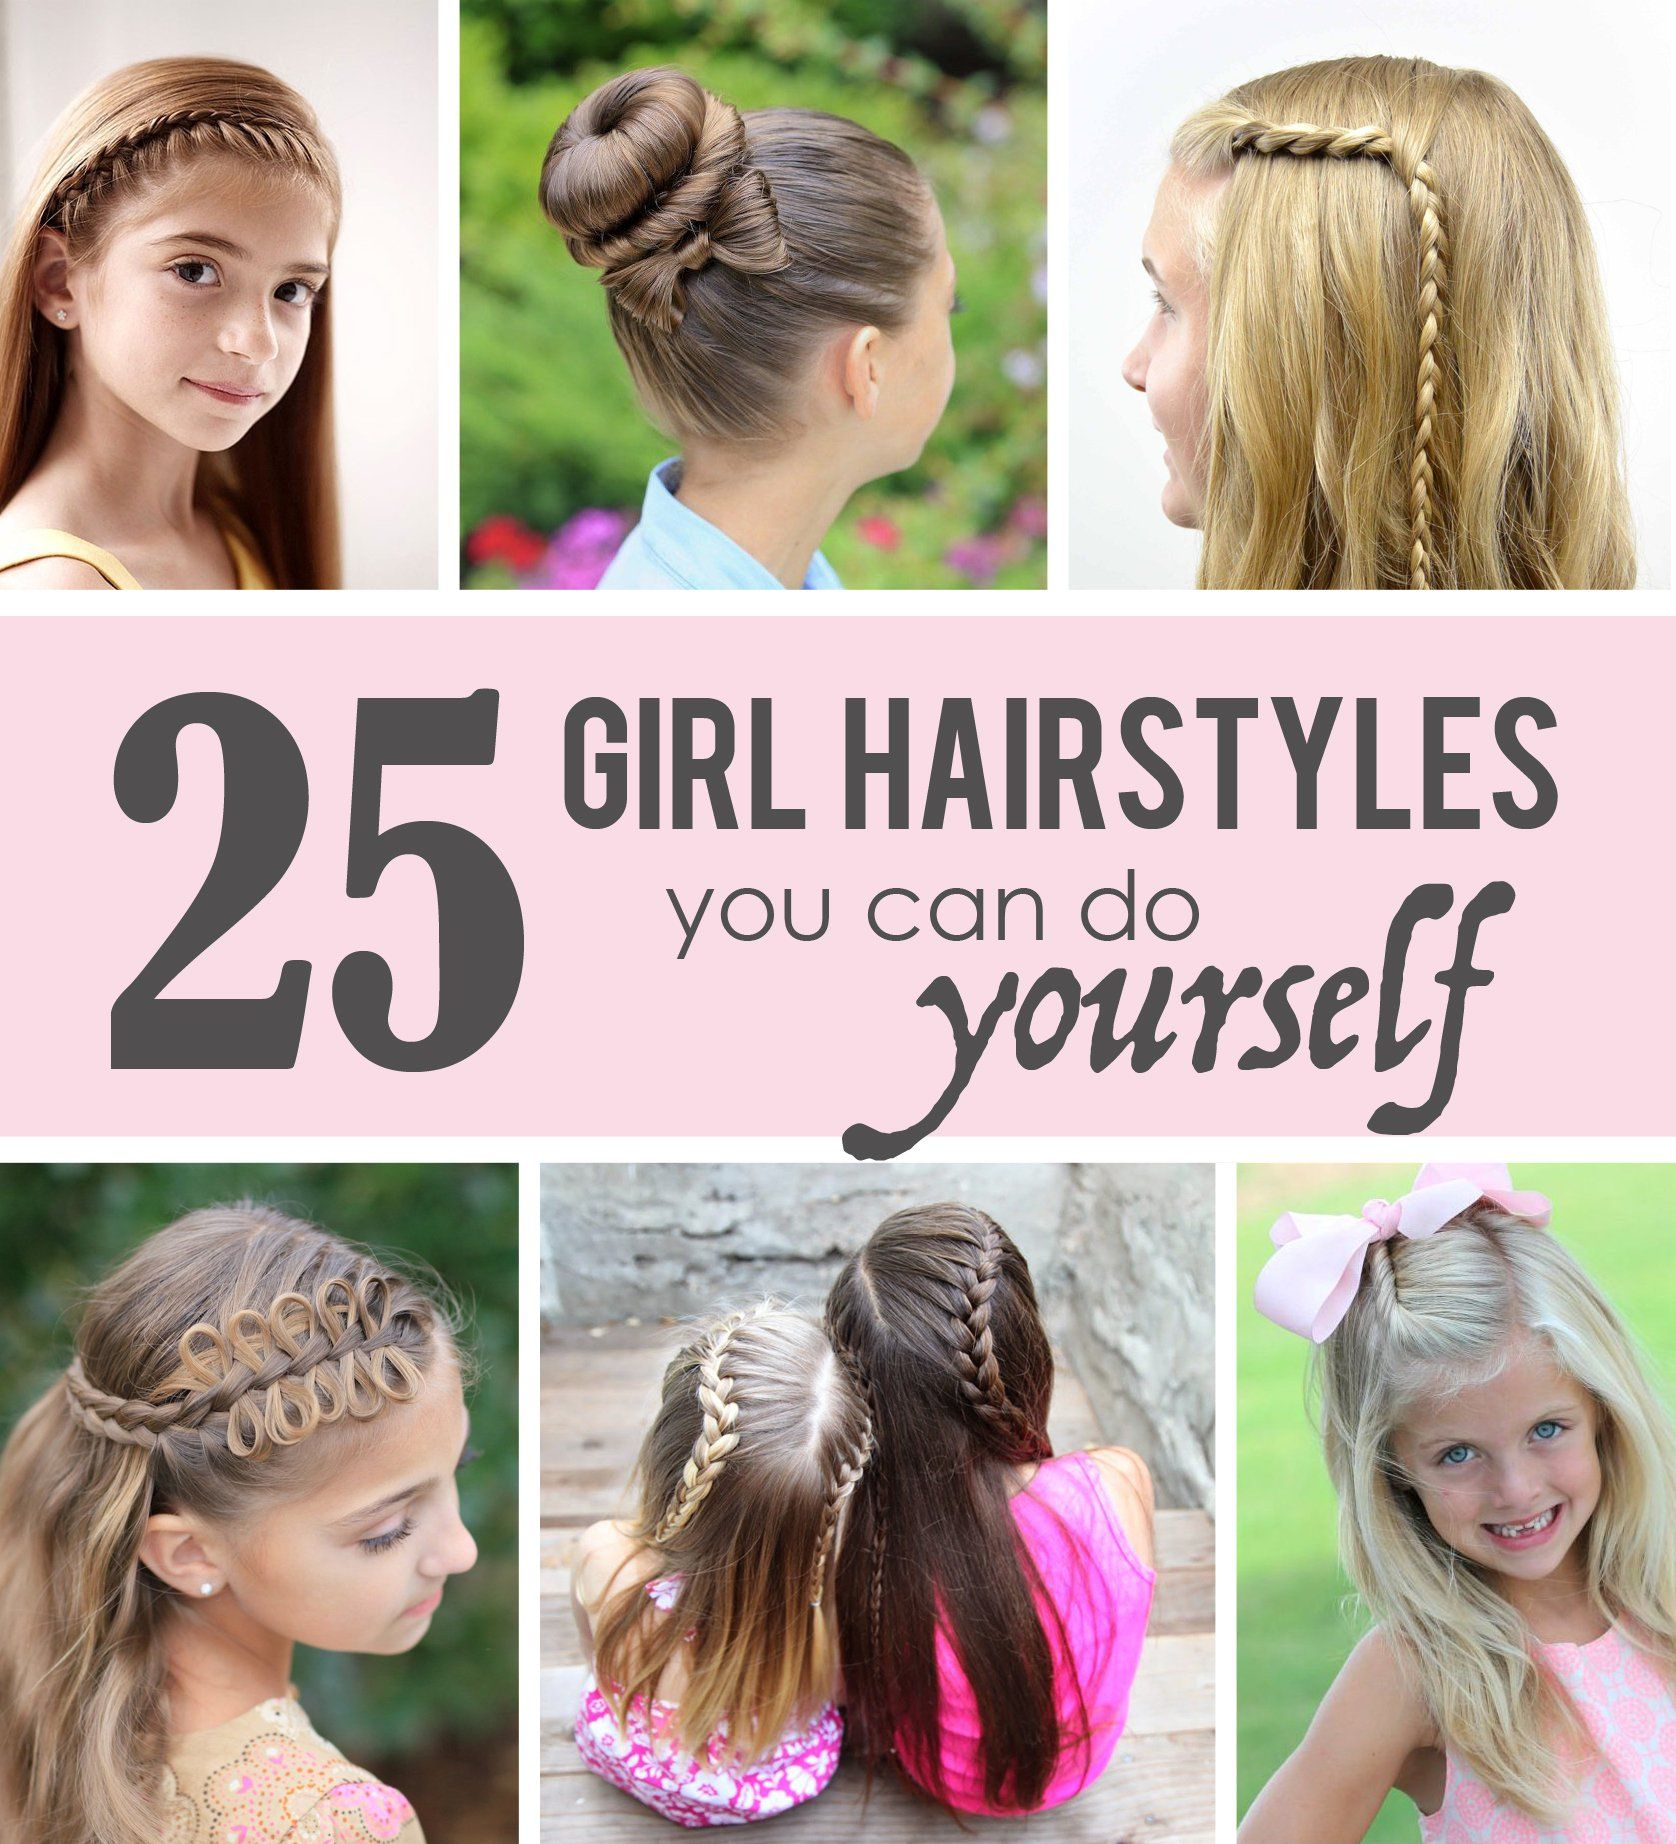 25 little girl hairstylesyou can do yourself girl hairstyles 25 little girl hairstylesyou can do yourself girls long hair solutioingenieria Image collections